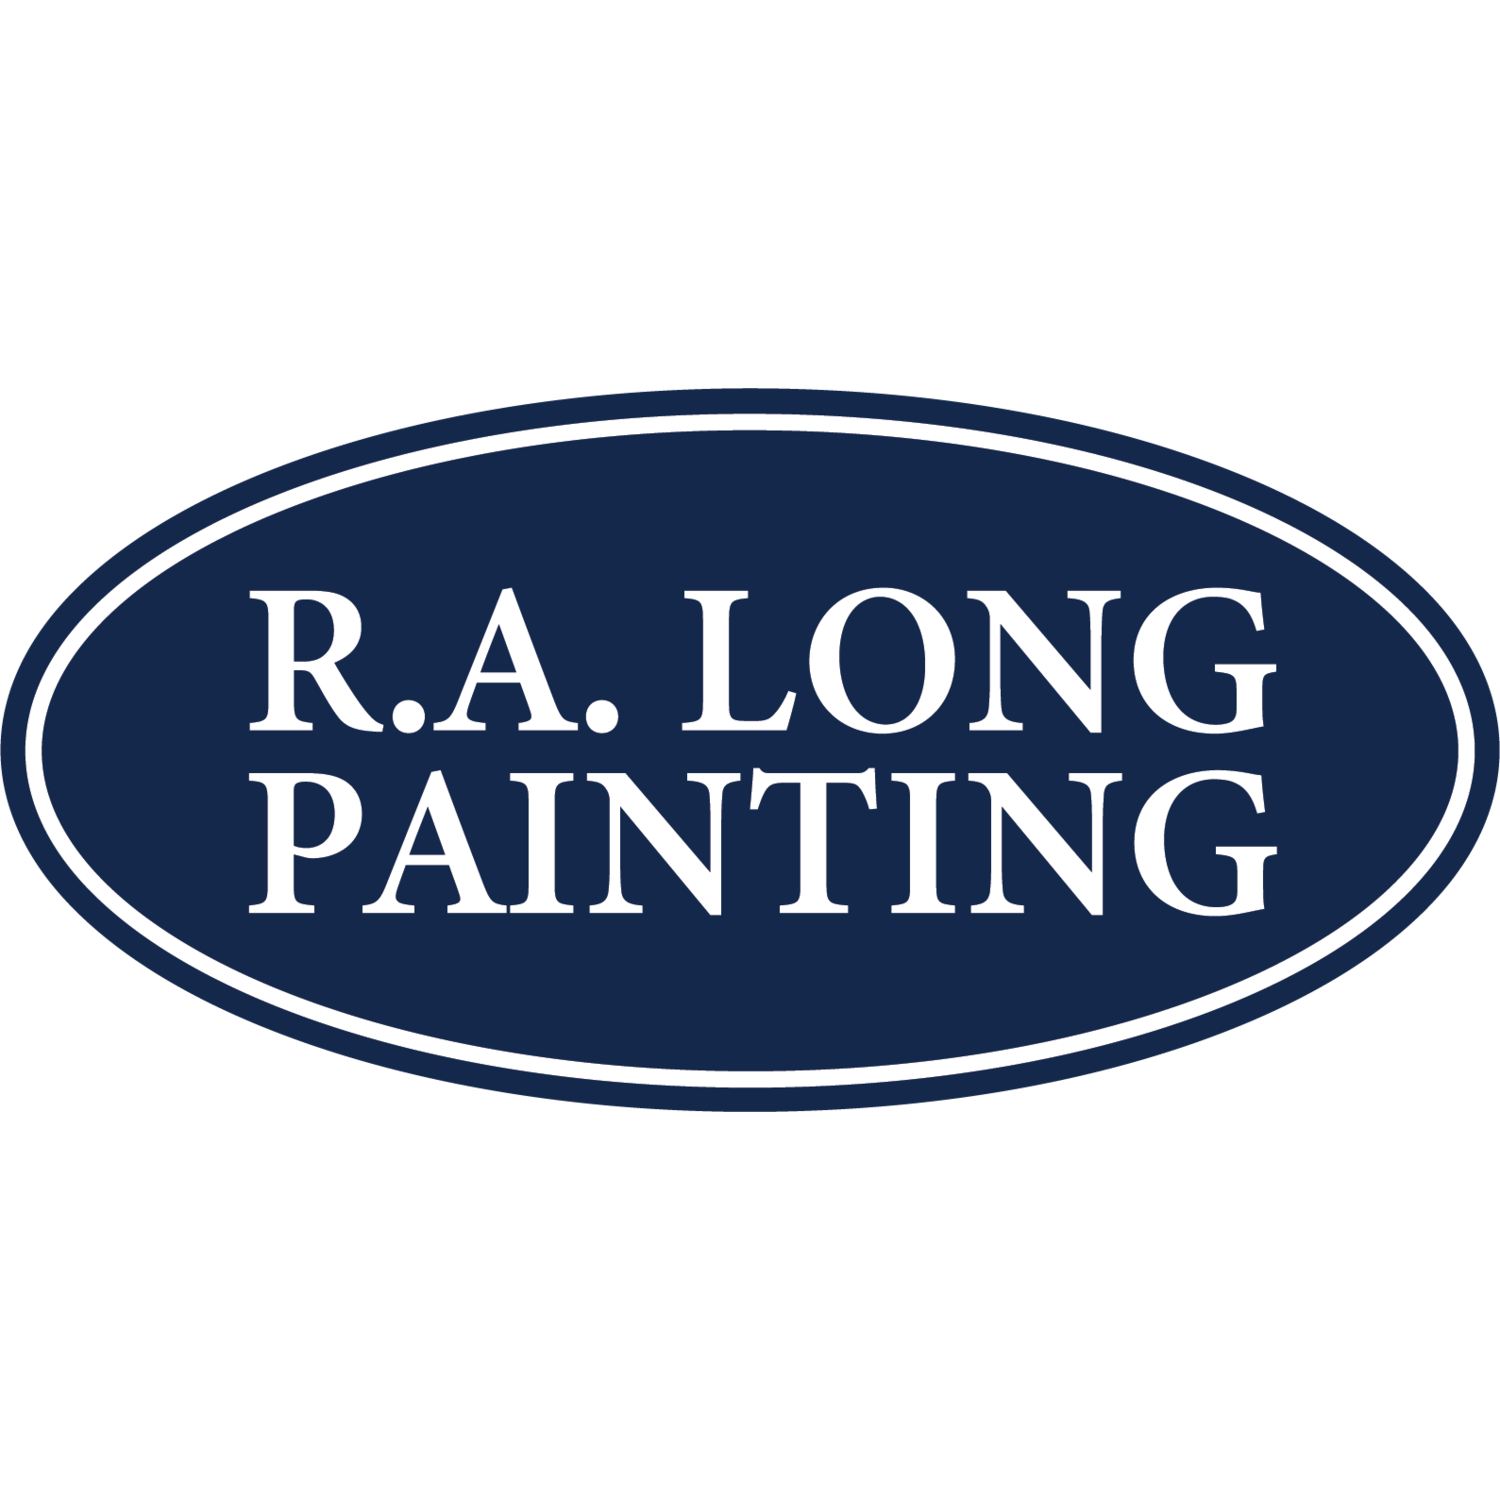 R.A. Long Painting - Granville, OH 43023 - (614)864-3951 | ShowMeLocal.com